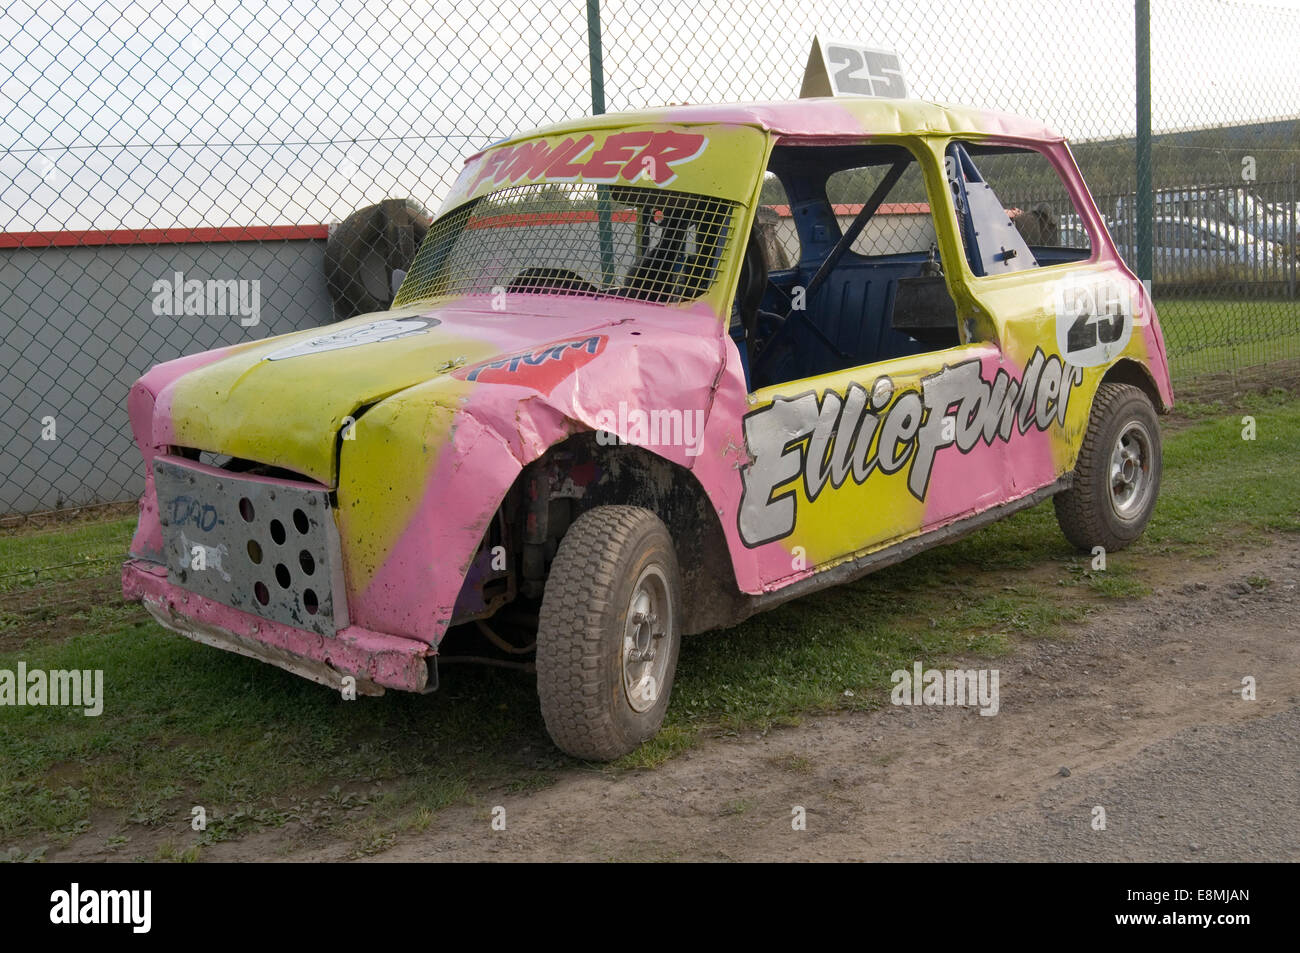 mini stock car cars minis grass track racing stockcar stockcars race races racing bl leyland bmc stripped out track - Stock Image